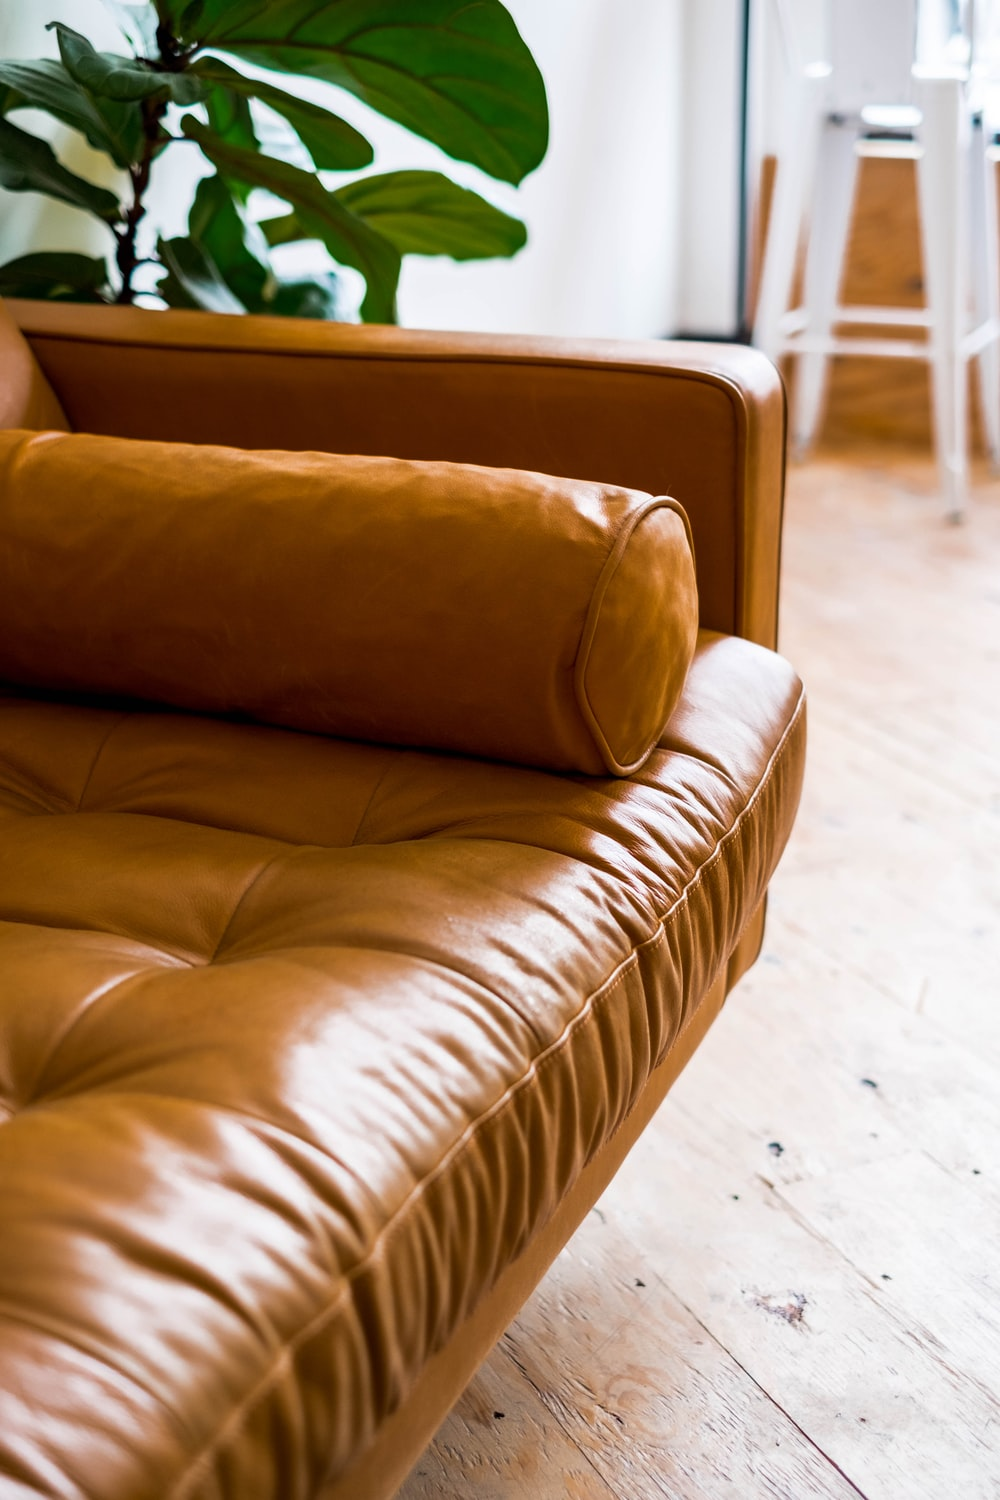 brown leather couch on white ceramic floor tiles